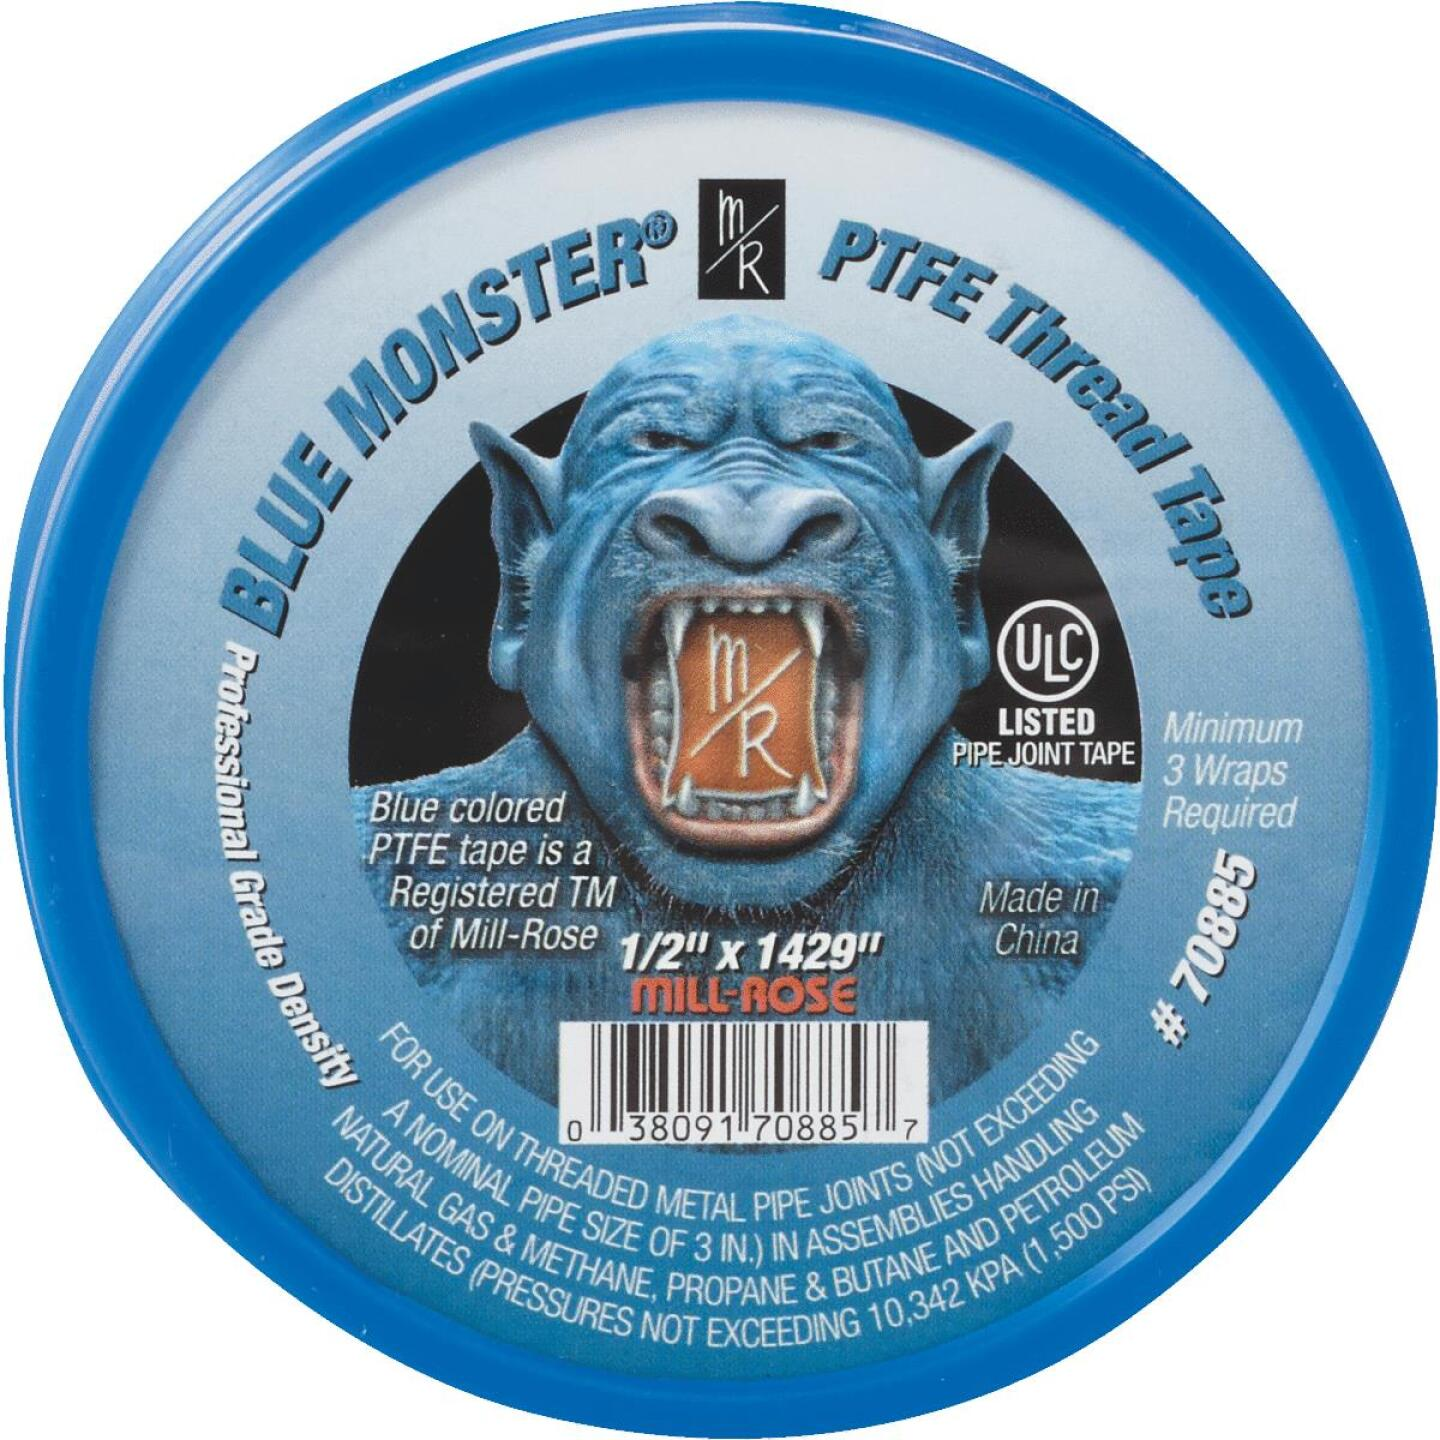 BLUE MONSTER 1/2 In. x 1429 In. Blue Thread Seal Tape Image 2